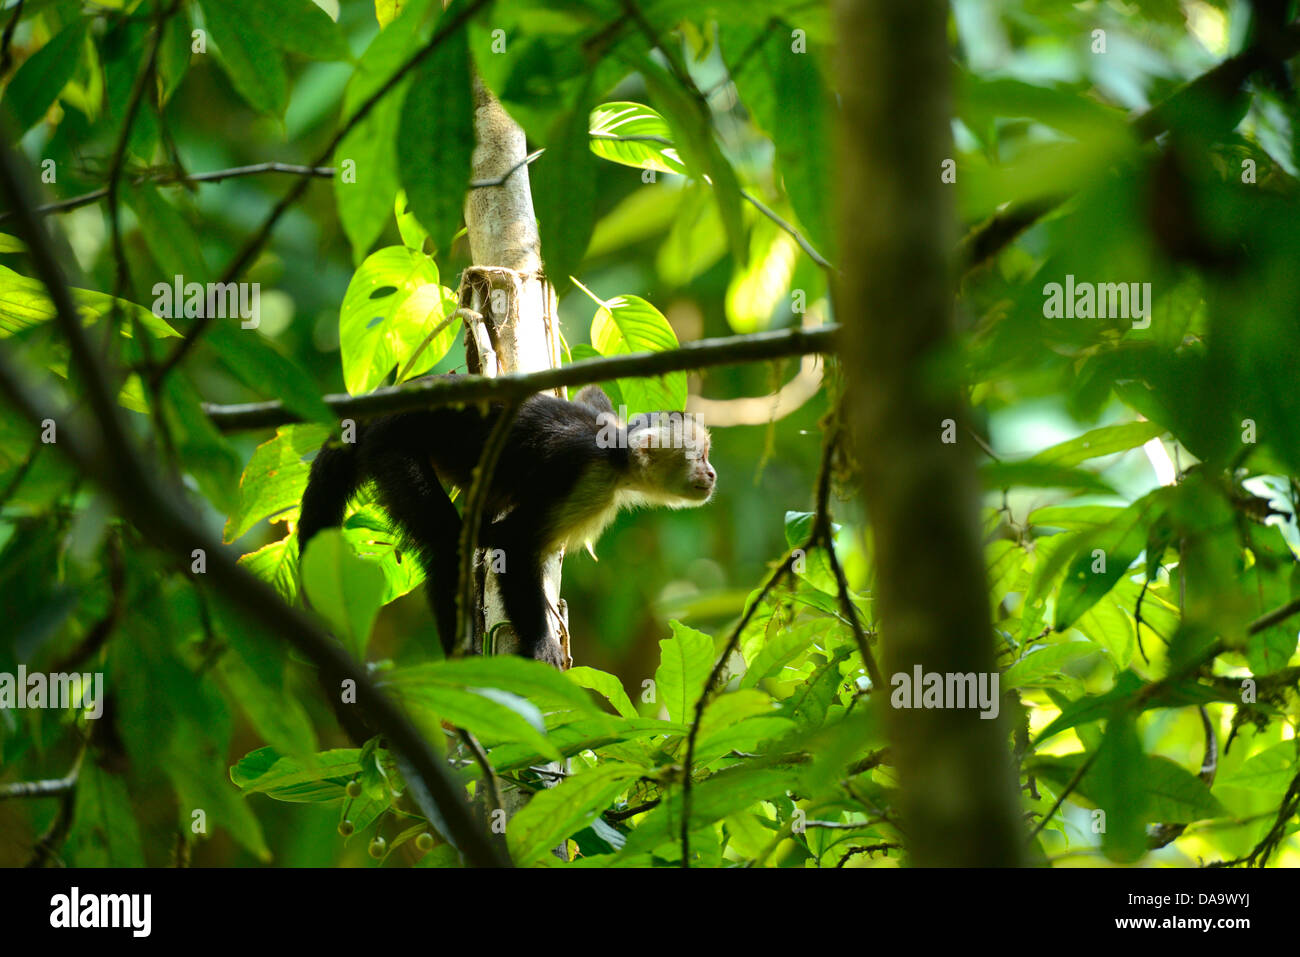 Central America, Costa Rica, Osa Peninsula, Corcovado, National Park, coastal forest, forest, jungle, monkey, wildlife, - Stock Image